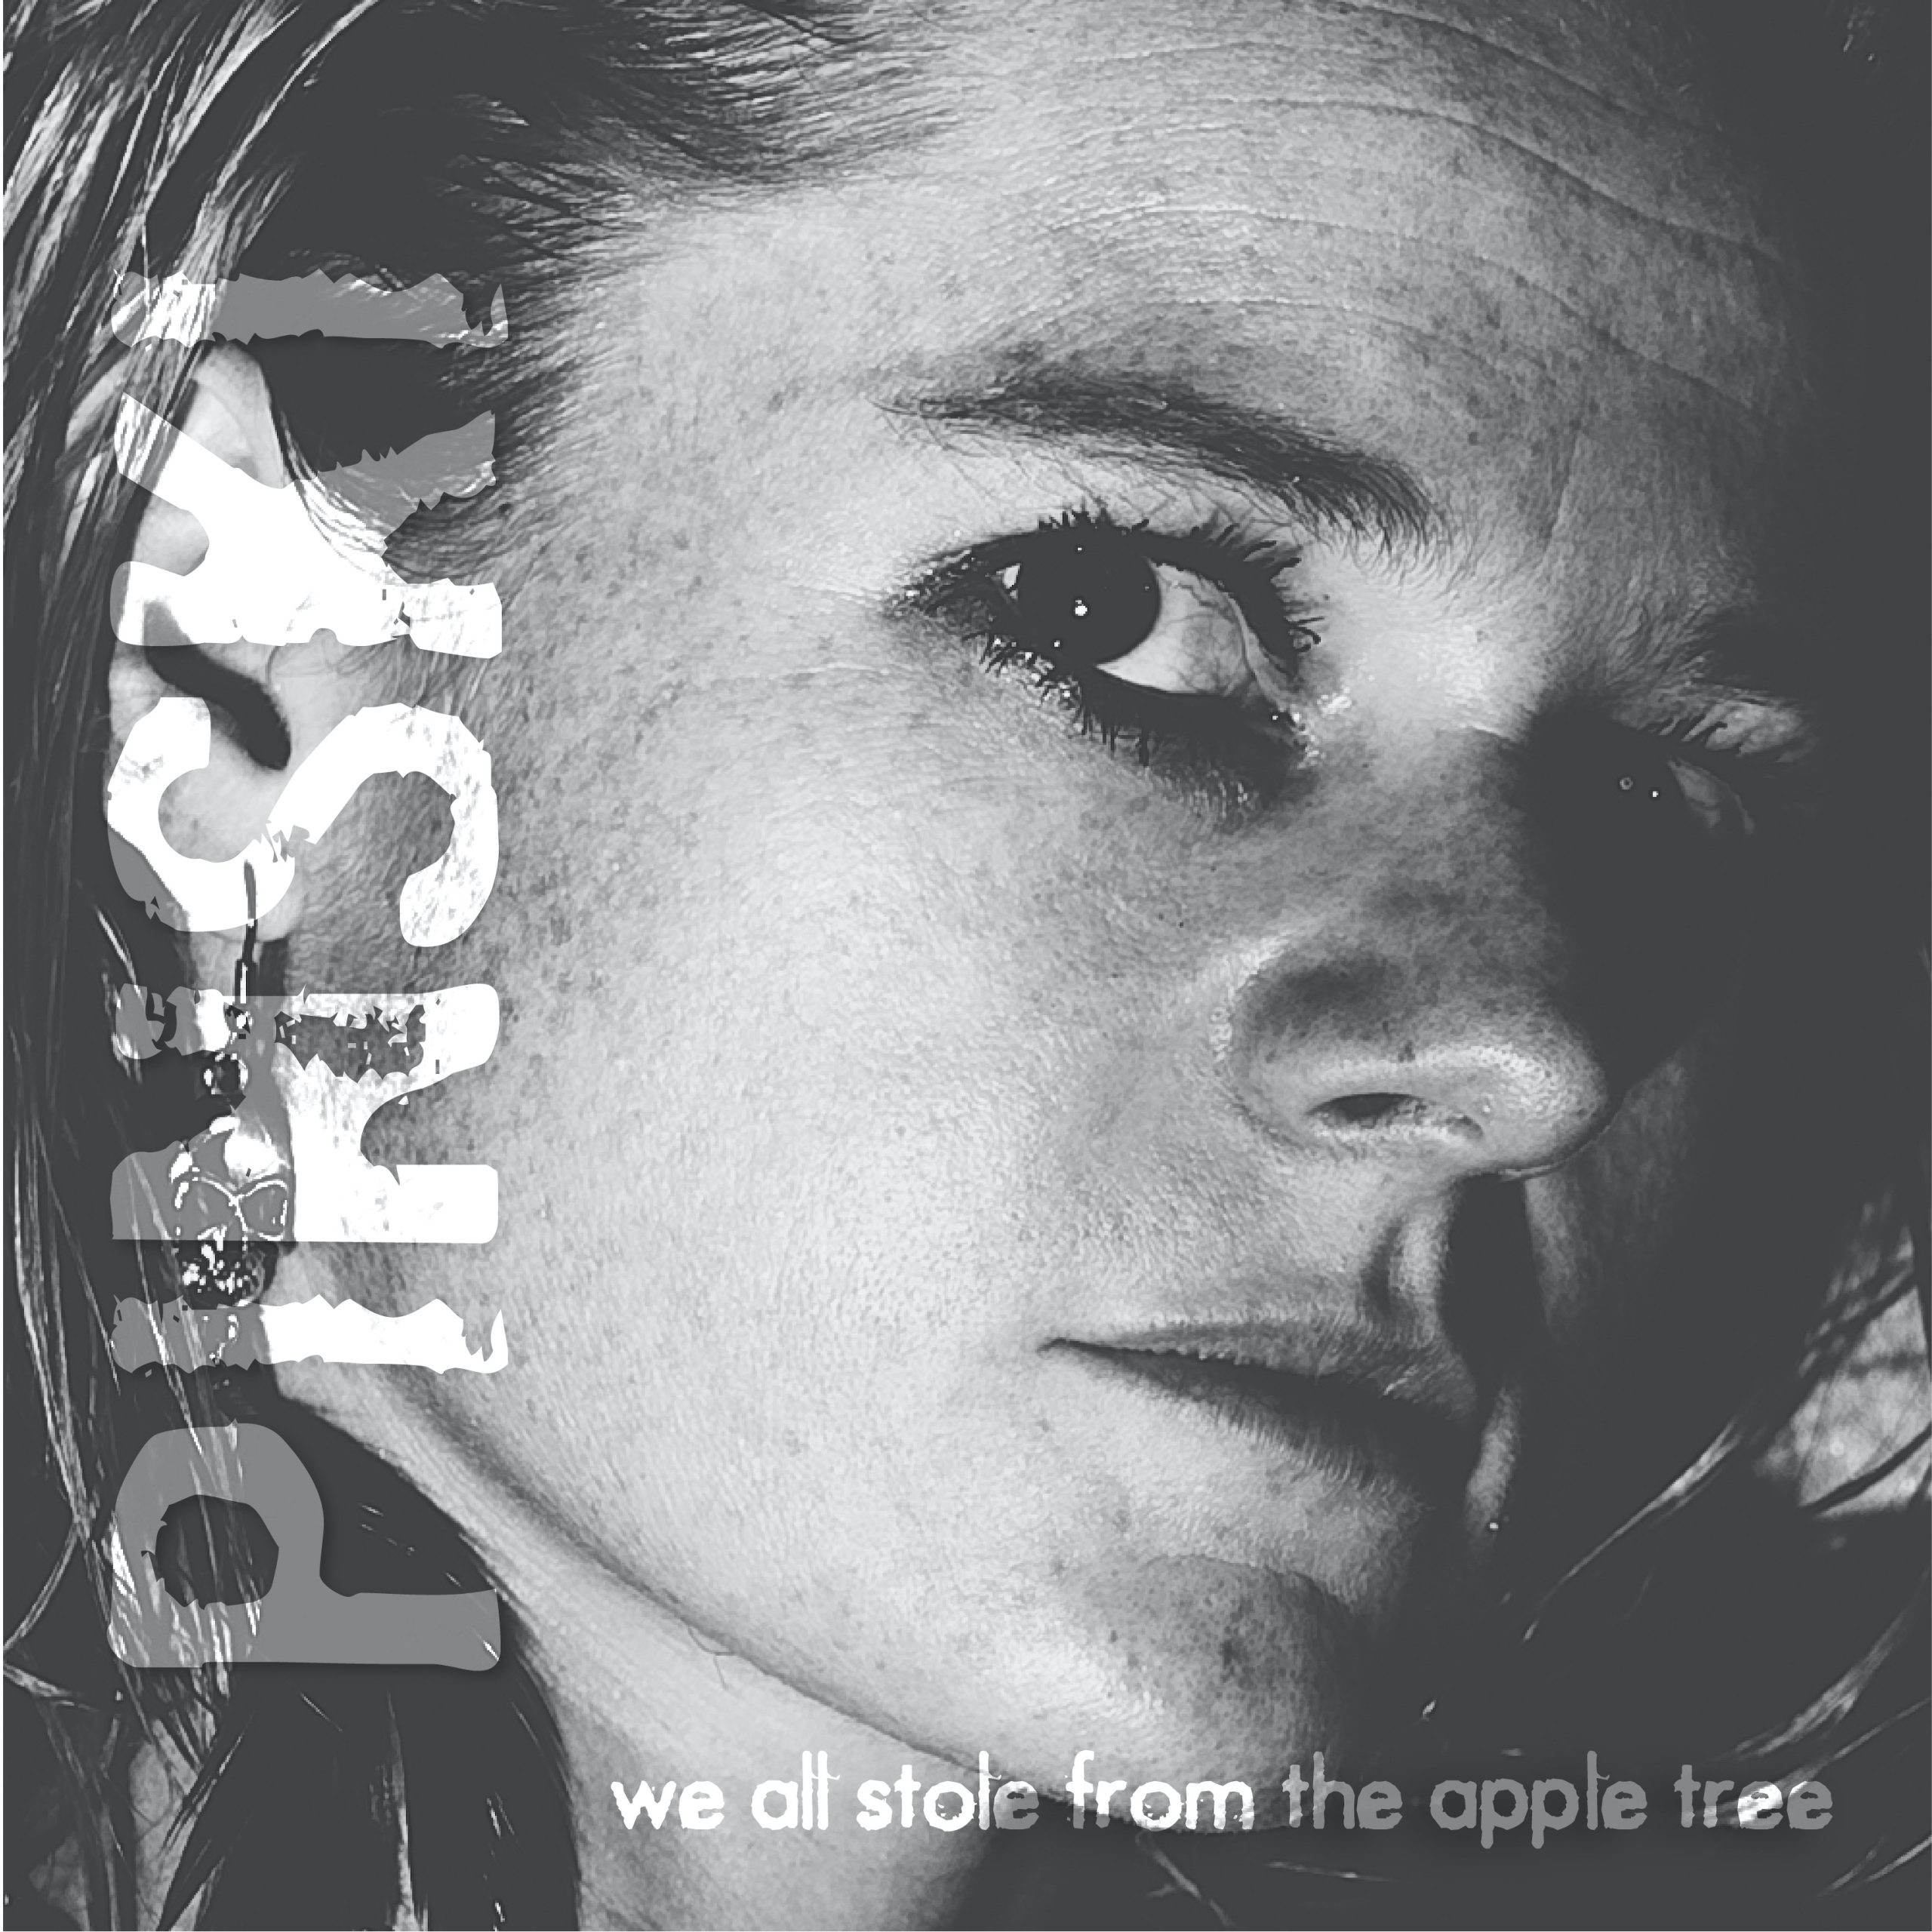 pinski-neue-ep-we-all-stole-from-the-apple-tree-erscheint-am-27-11-female-progressive-rock-aus-koeln